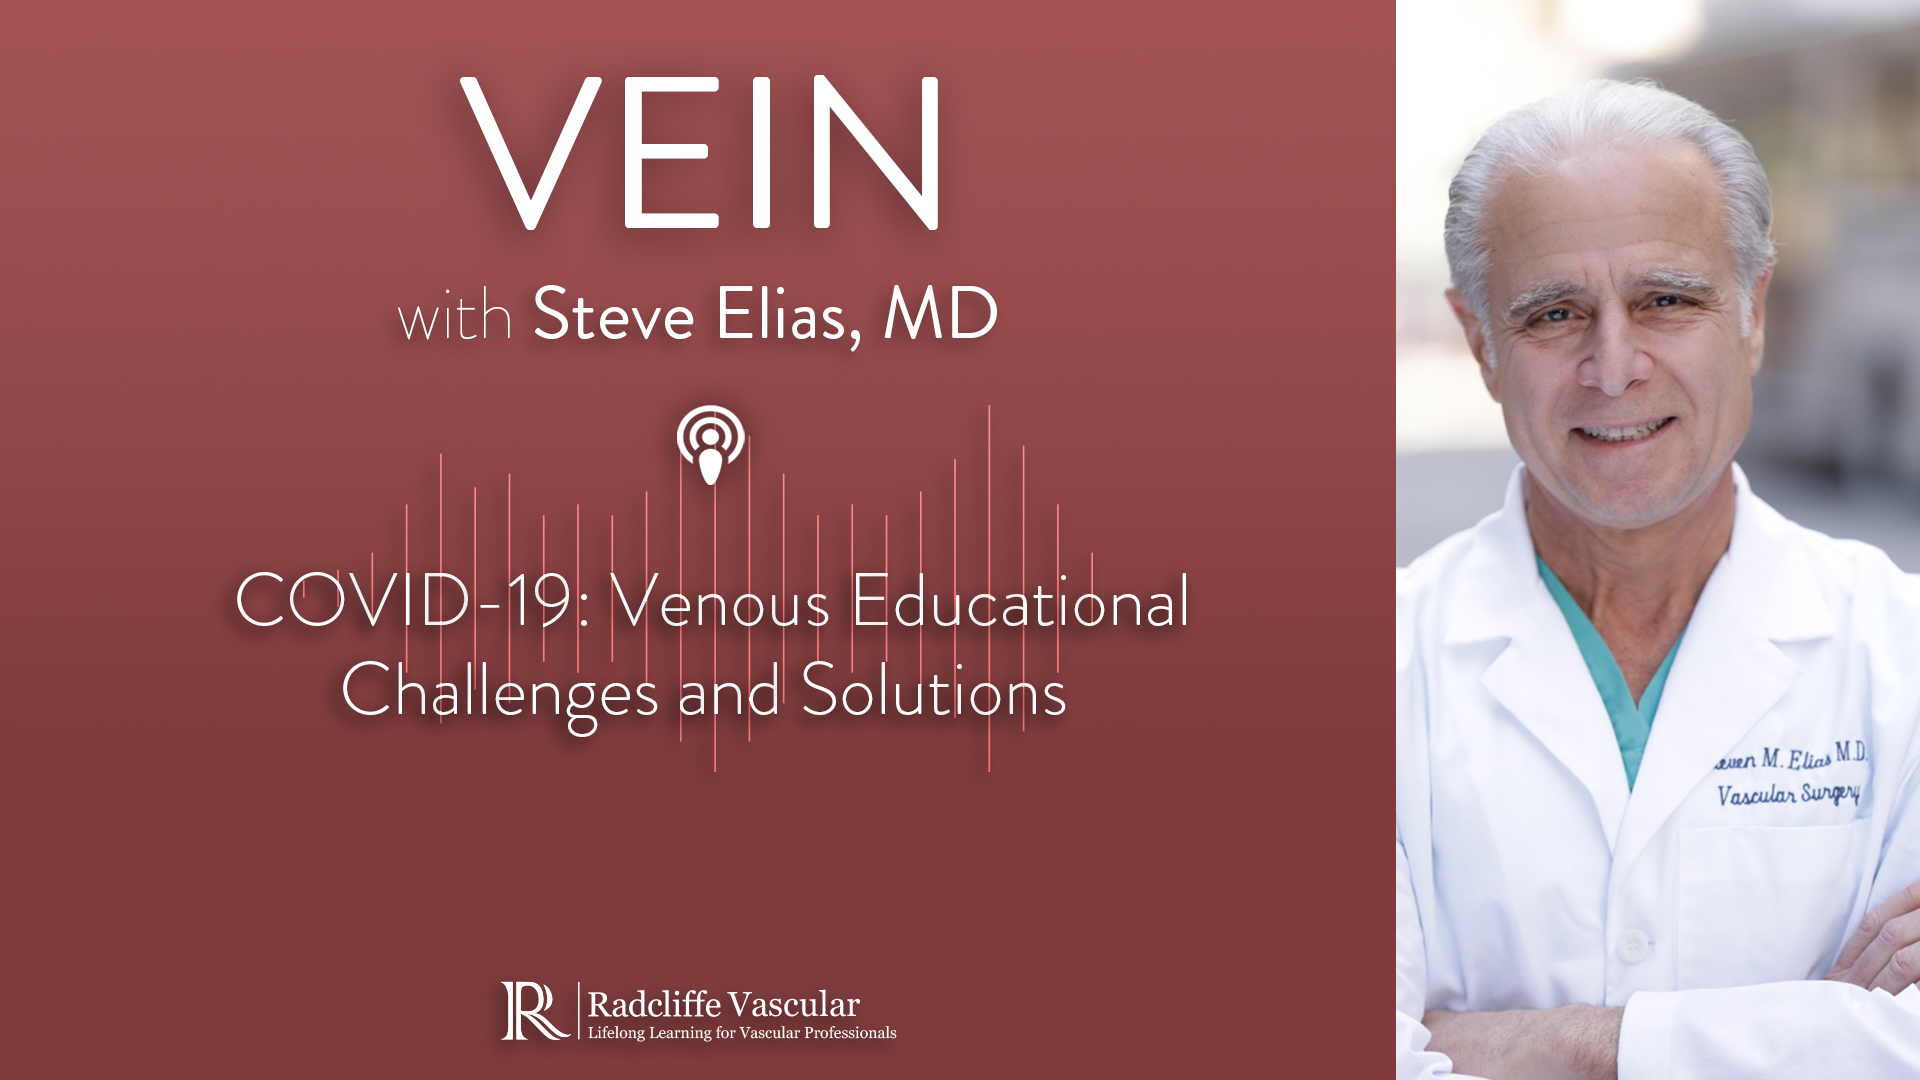 COVID-19: Venous Educational Challenges and Solutions